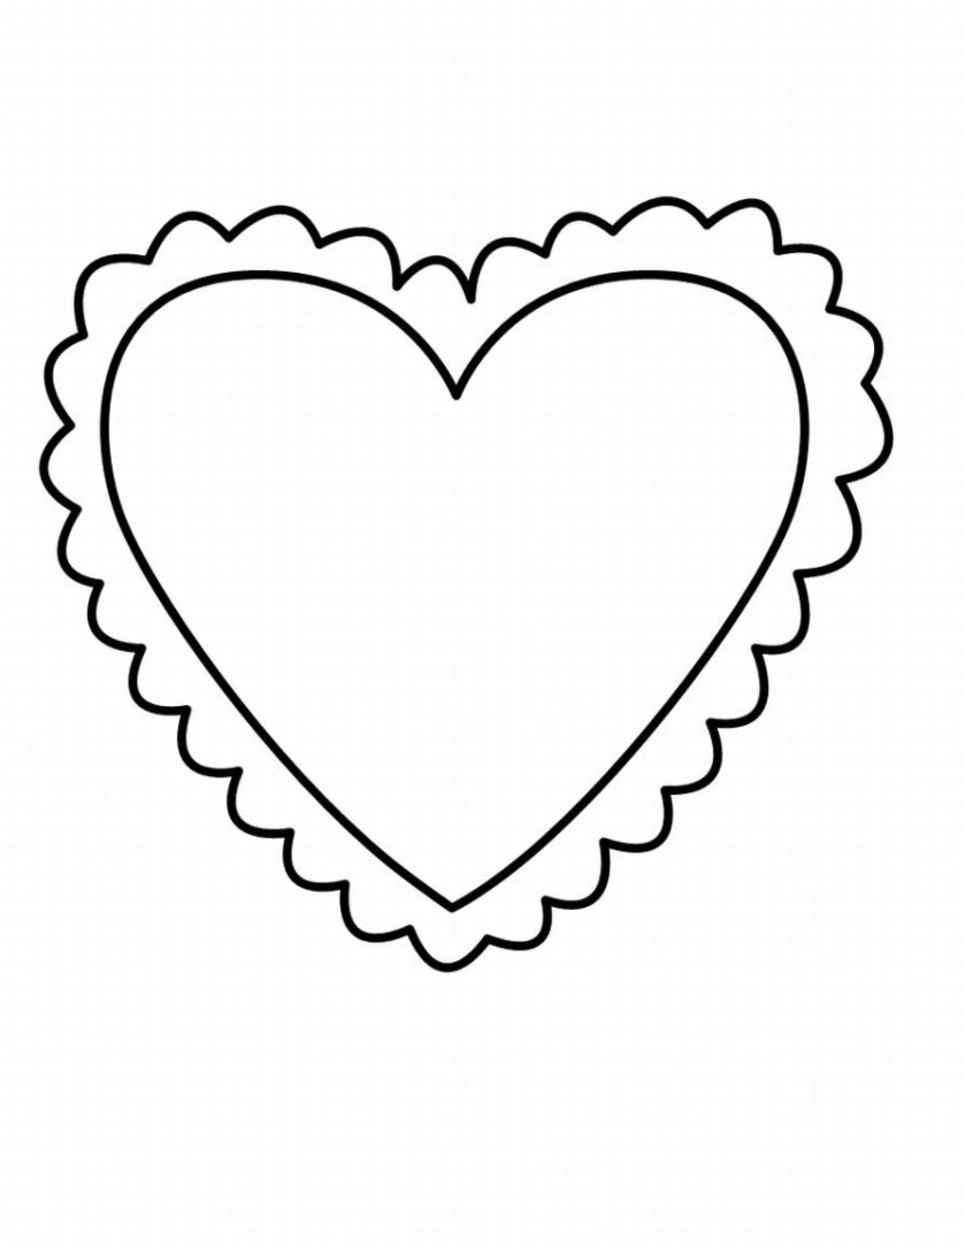 hearts coloring page heart coloring pages for adults page hearts coloring